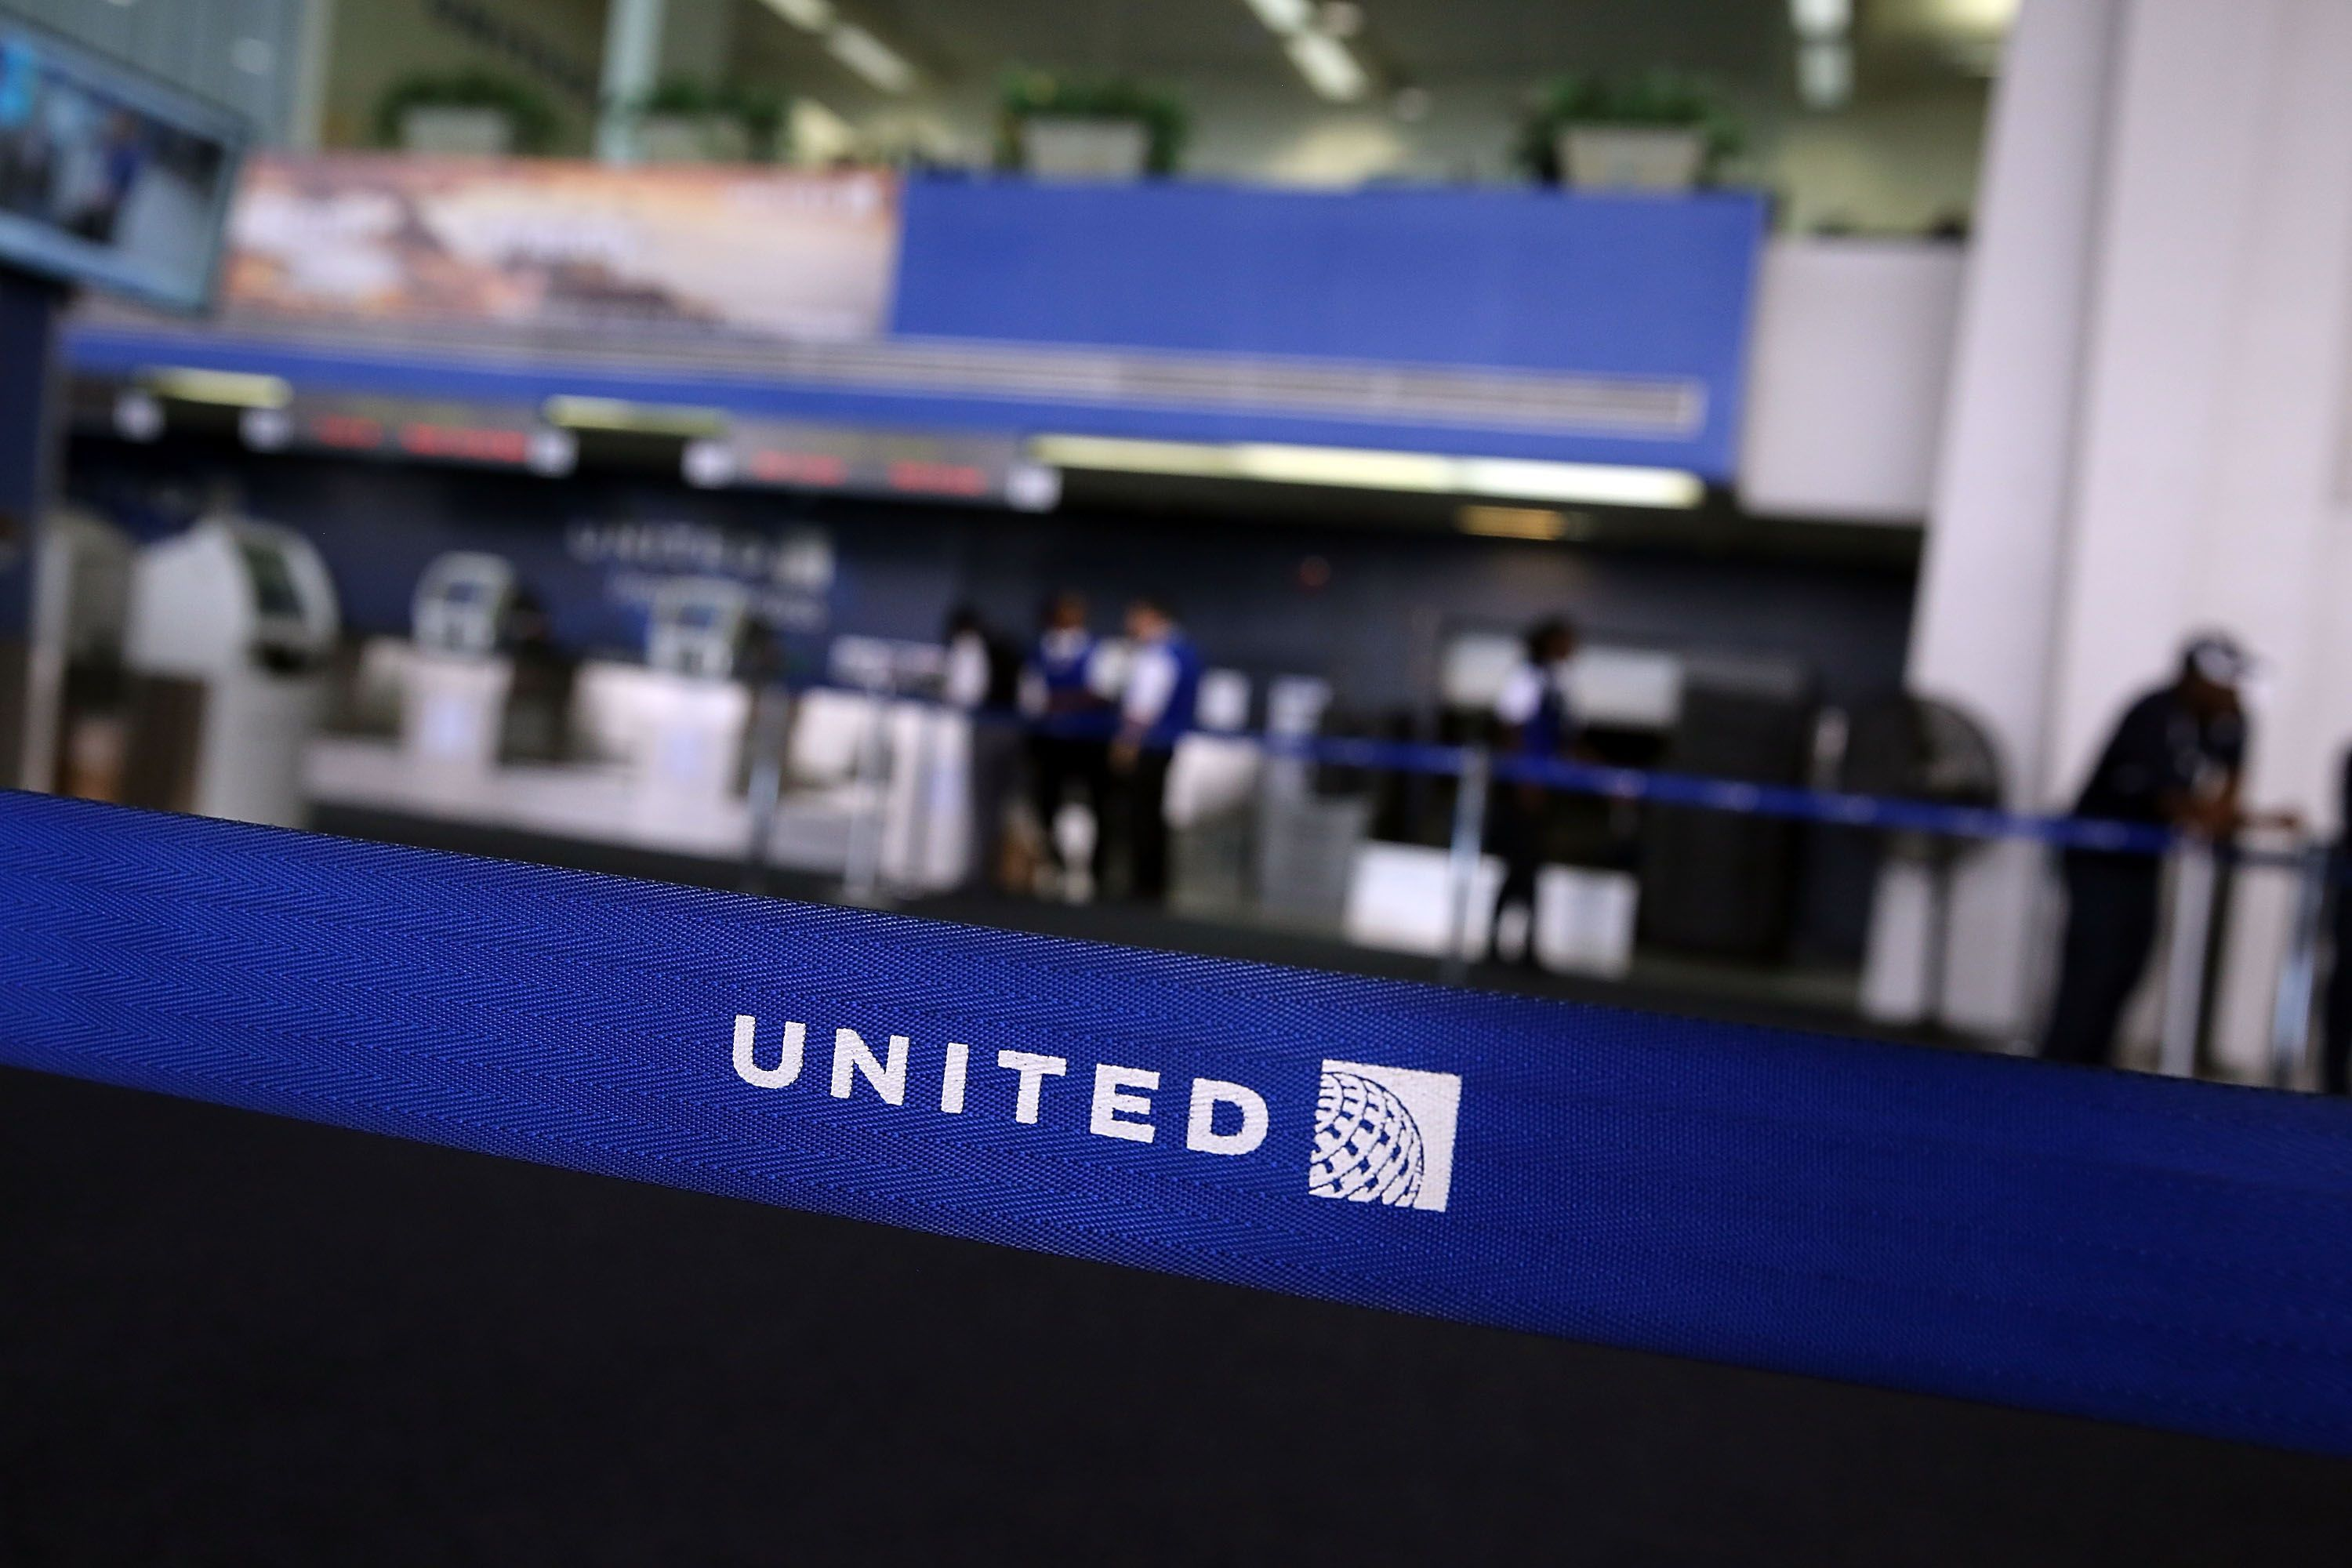 NEWARK, NJ - JULY 08: The United Airlines terminal is viewed at Newark Liberty Airport on July 8, 2015 in Newark, New Jersey. A computer system glitch caused thousands of United Airlines flights throughout major airports to be grounded Wednesday morning. The issue was resolved by late morning with some ripple delays still being felt at airports throughout the country.   Spencer Platt/Getty Images/AFP == FOR NEWSPAPERS, INTERNET, TELCOS & TELEVISION USE ONLY ==